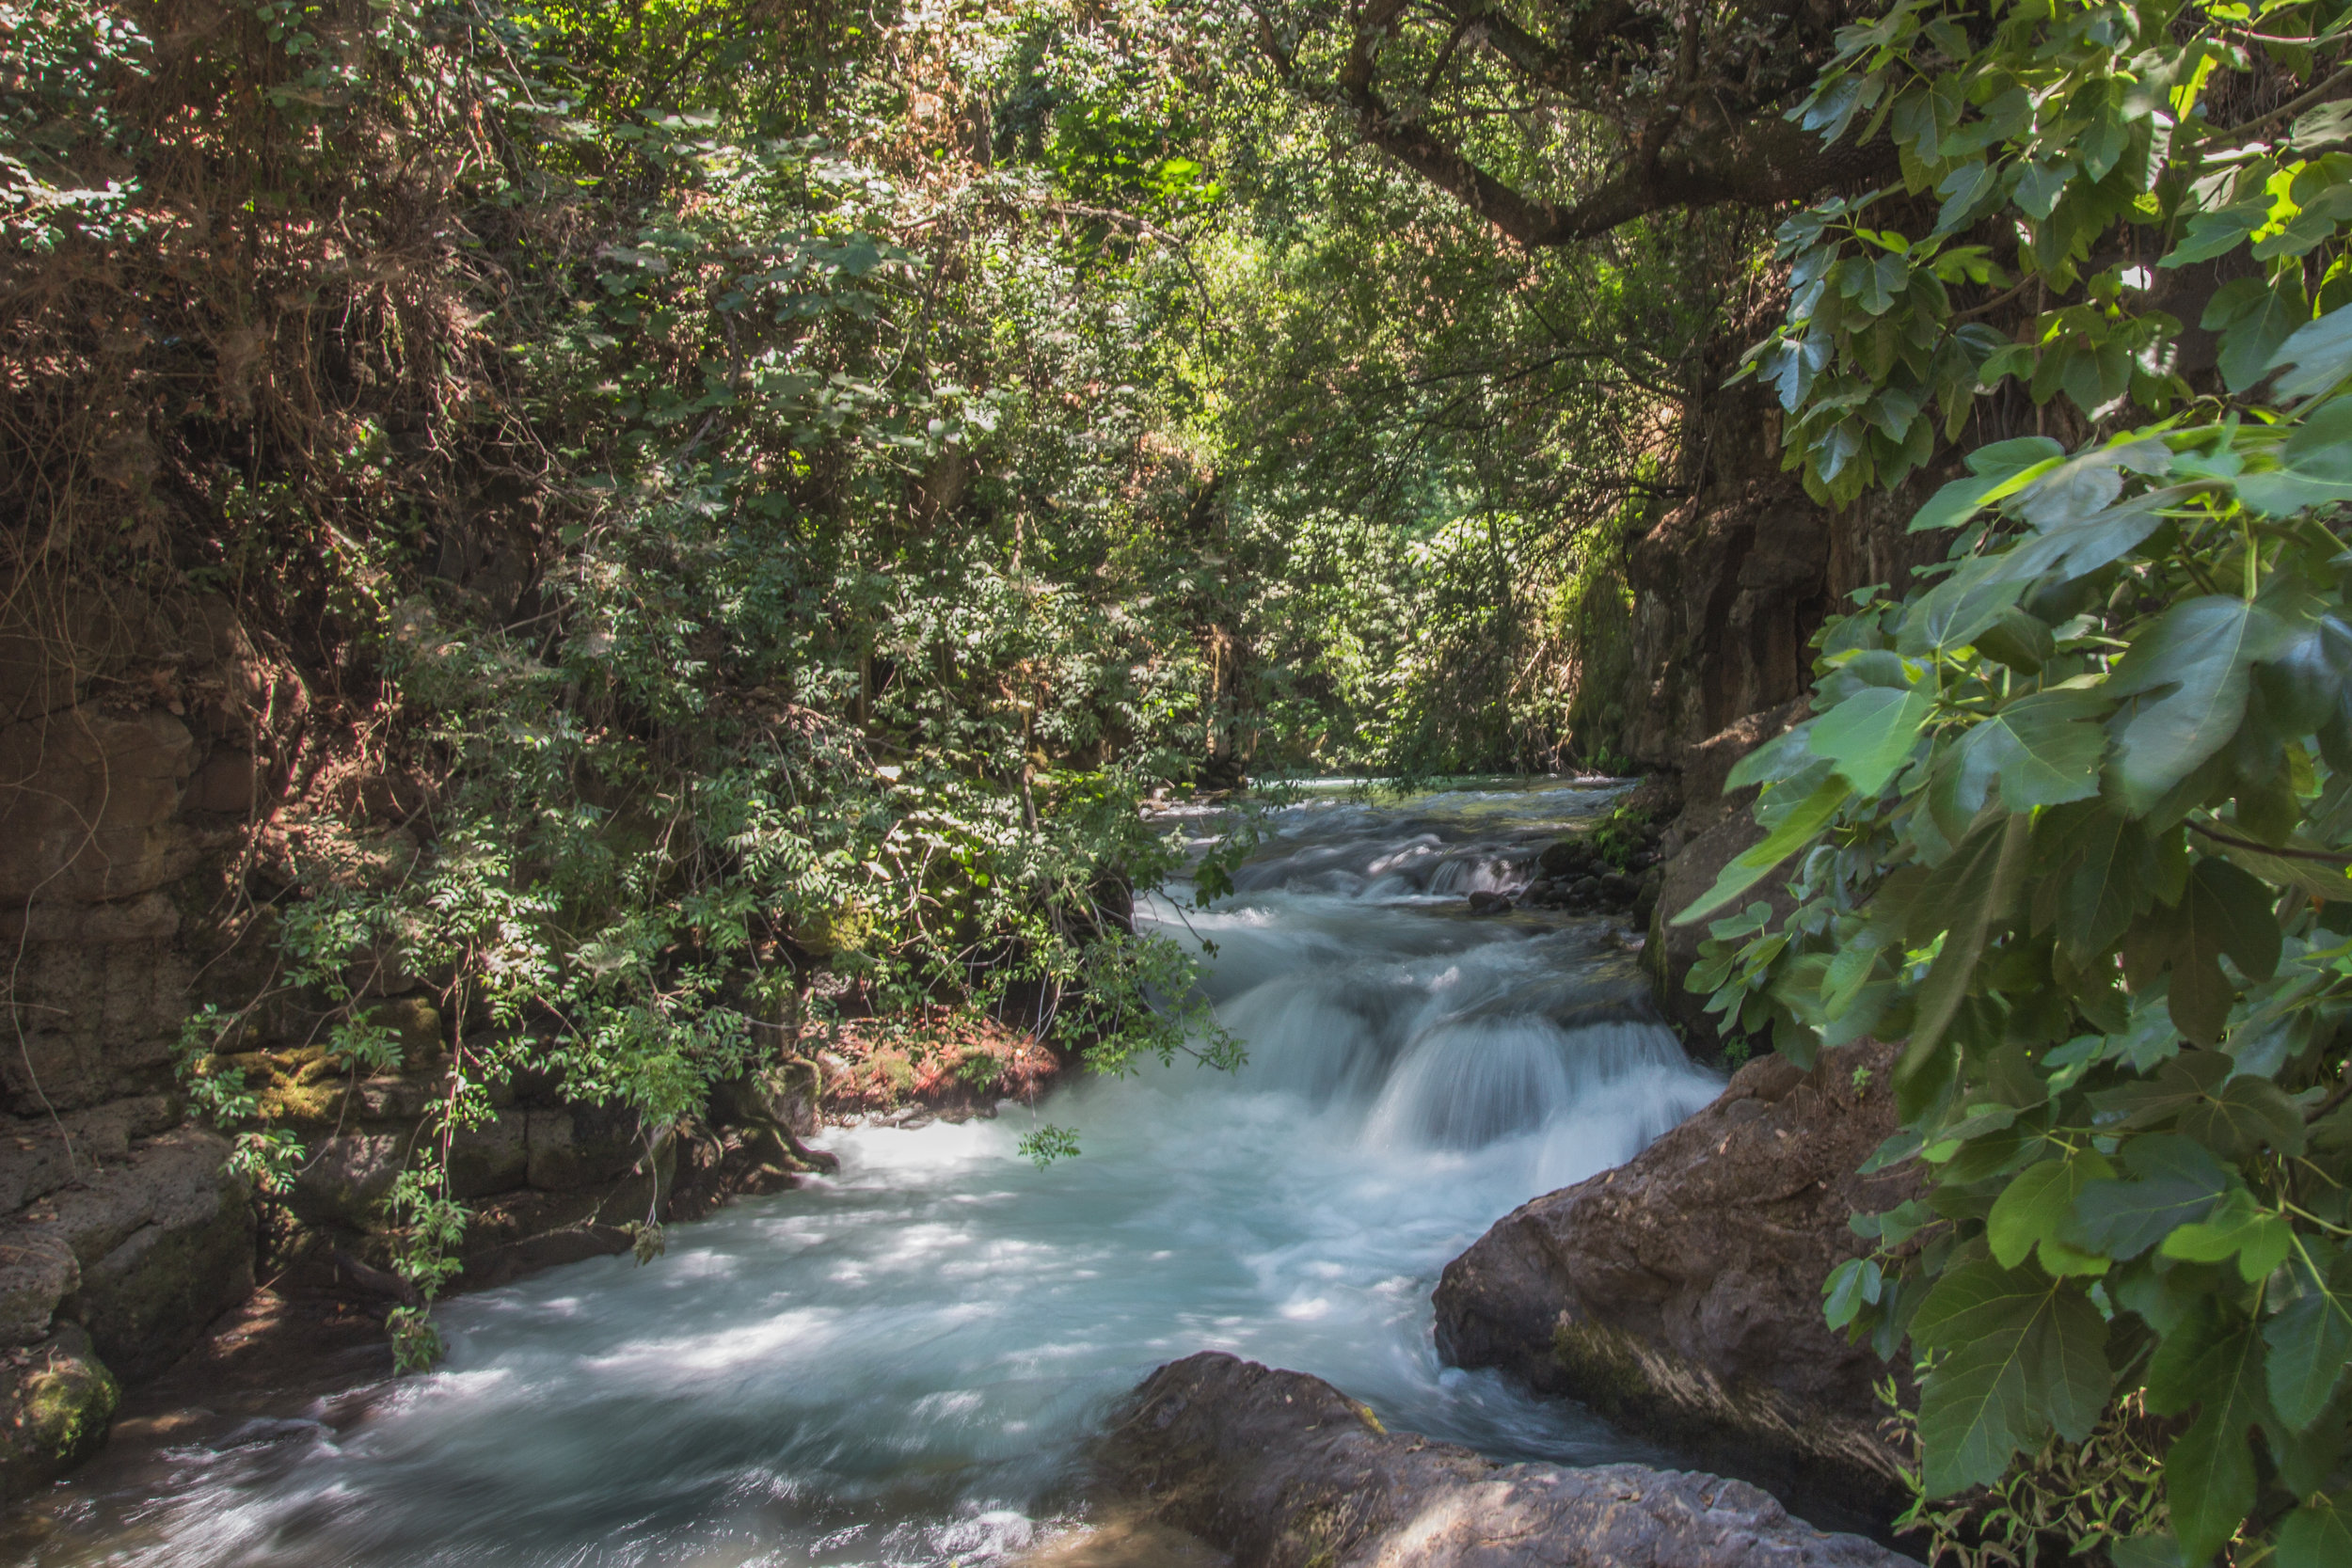 One of the falls at Banias Falls and Springs, national parks here in Israel.  It was a short walk in and out.